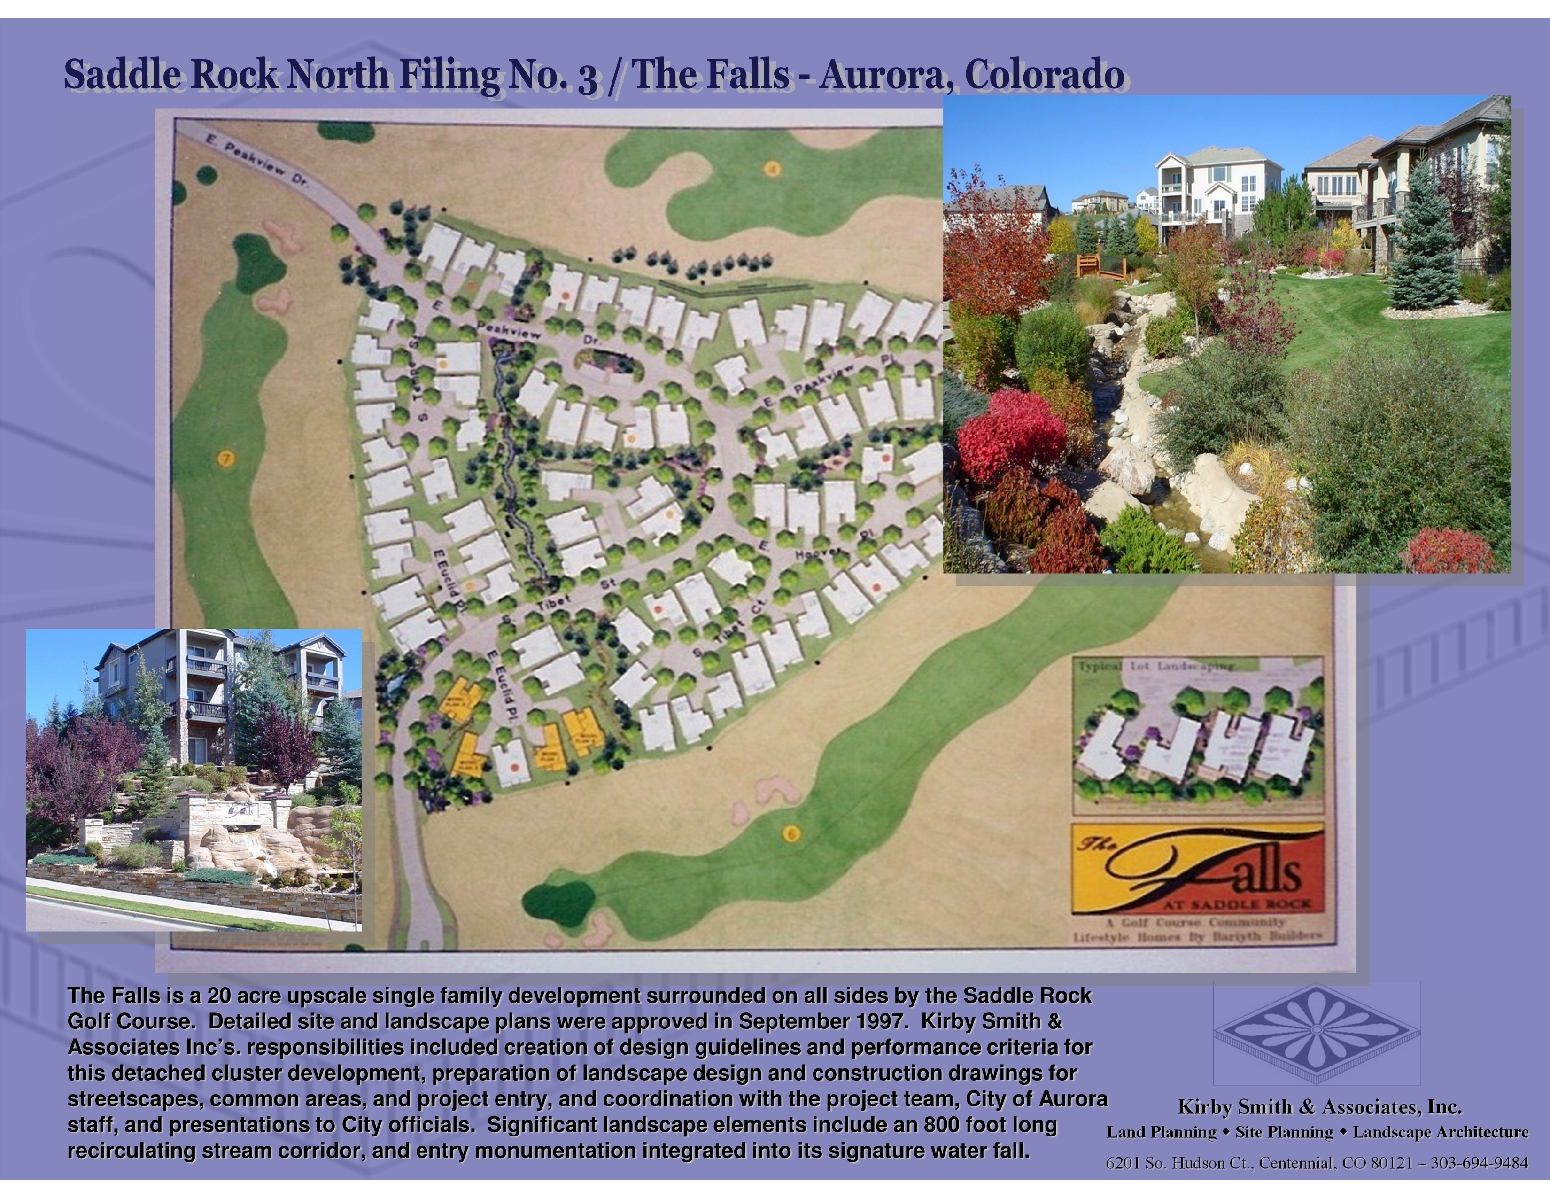 The Falls is a 20 acre upscale single family development surrounded on all sides by the Saddle Rock Golf Course.  Detailed site and landscape plans were approved in September 1997.  Kirby Smith & Associates Inc's. responsibilities included creation of design guidelines and performance criteria for this detached cluster development, preparation of landscape design and construction drawings for streetscapes, common areas, and project entry, and coordination with the project team, City of Aurora staff, and presentations to City officials.  Significant landscape elements include an 800 foot long recirculating stream corridor, and entry monumentation integrated into its signature water fall.